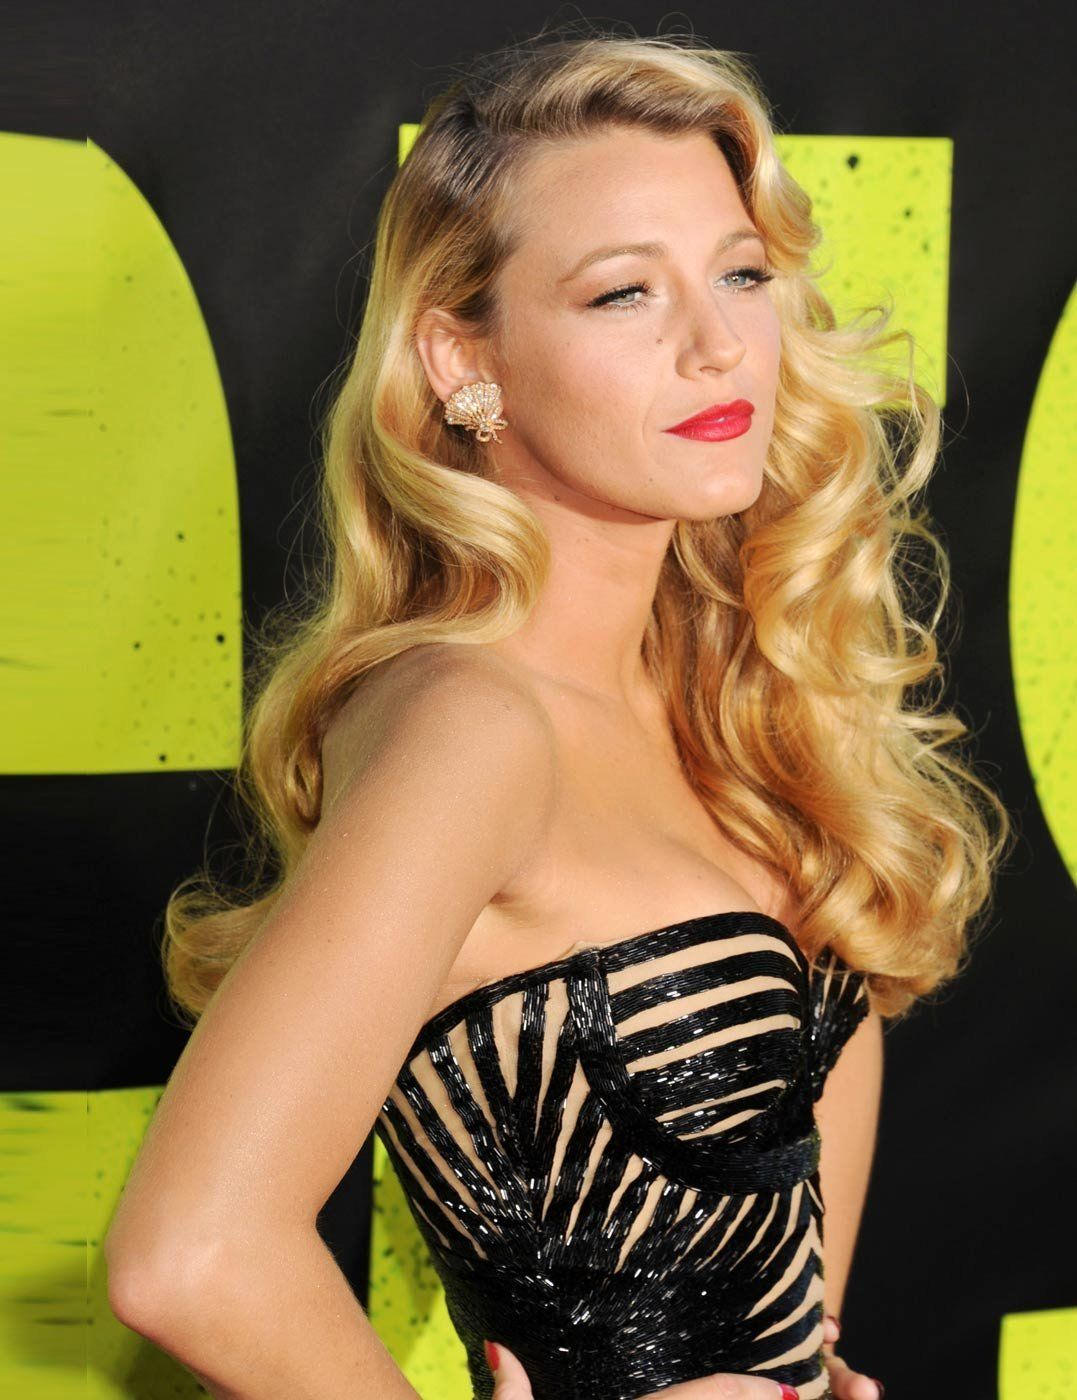 absolutely love me some blake! that dress + hair + makeup